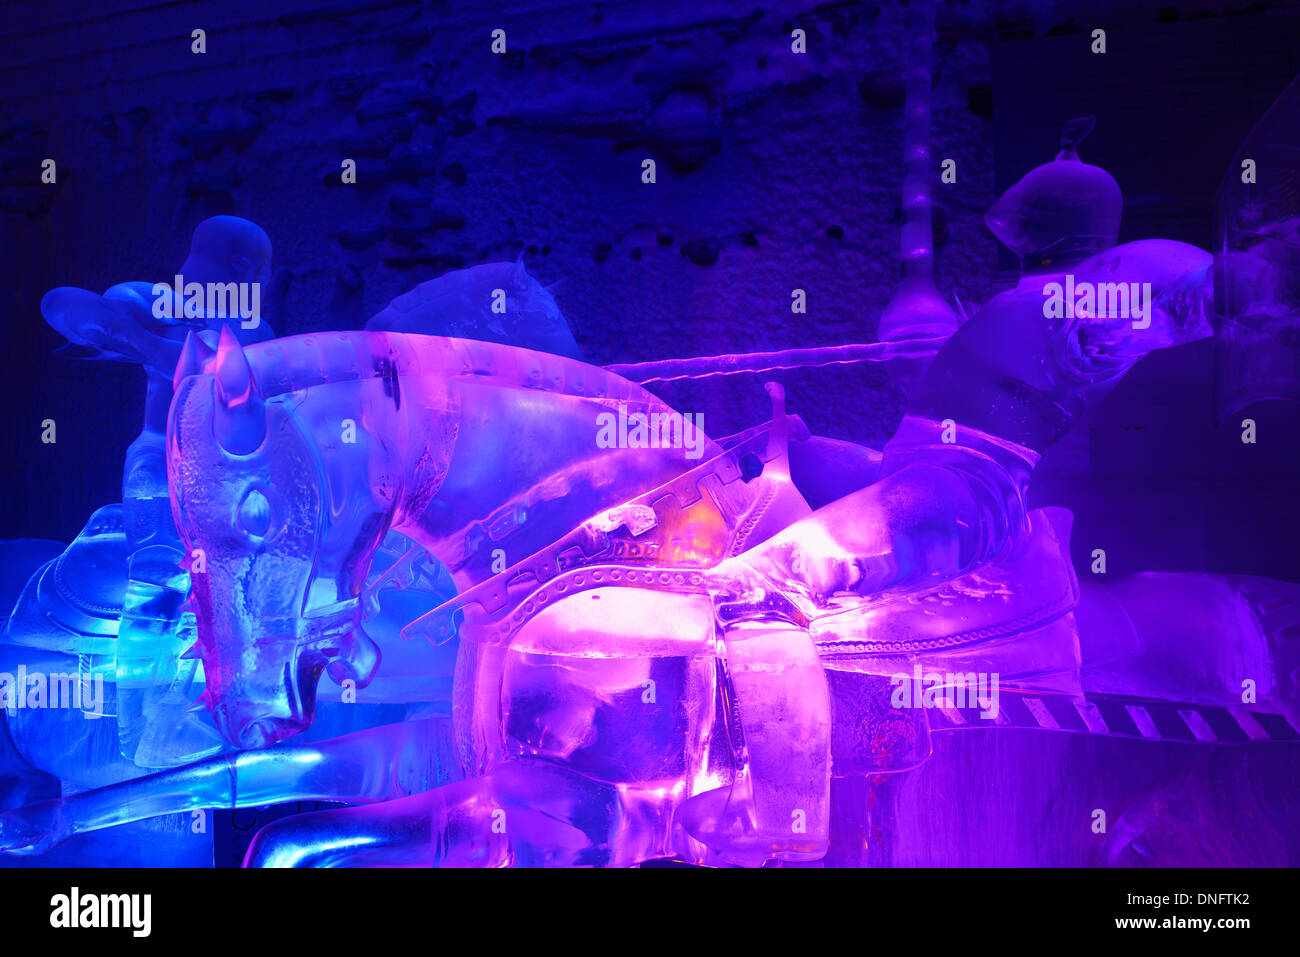 Ice sculpture of jousting knights on horseback at the Aurora Ice Museum Chena Hot Springs Alaska USA - Stock Image